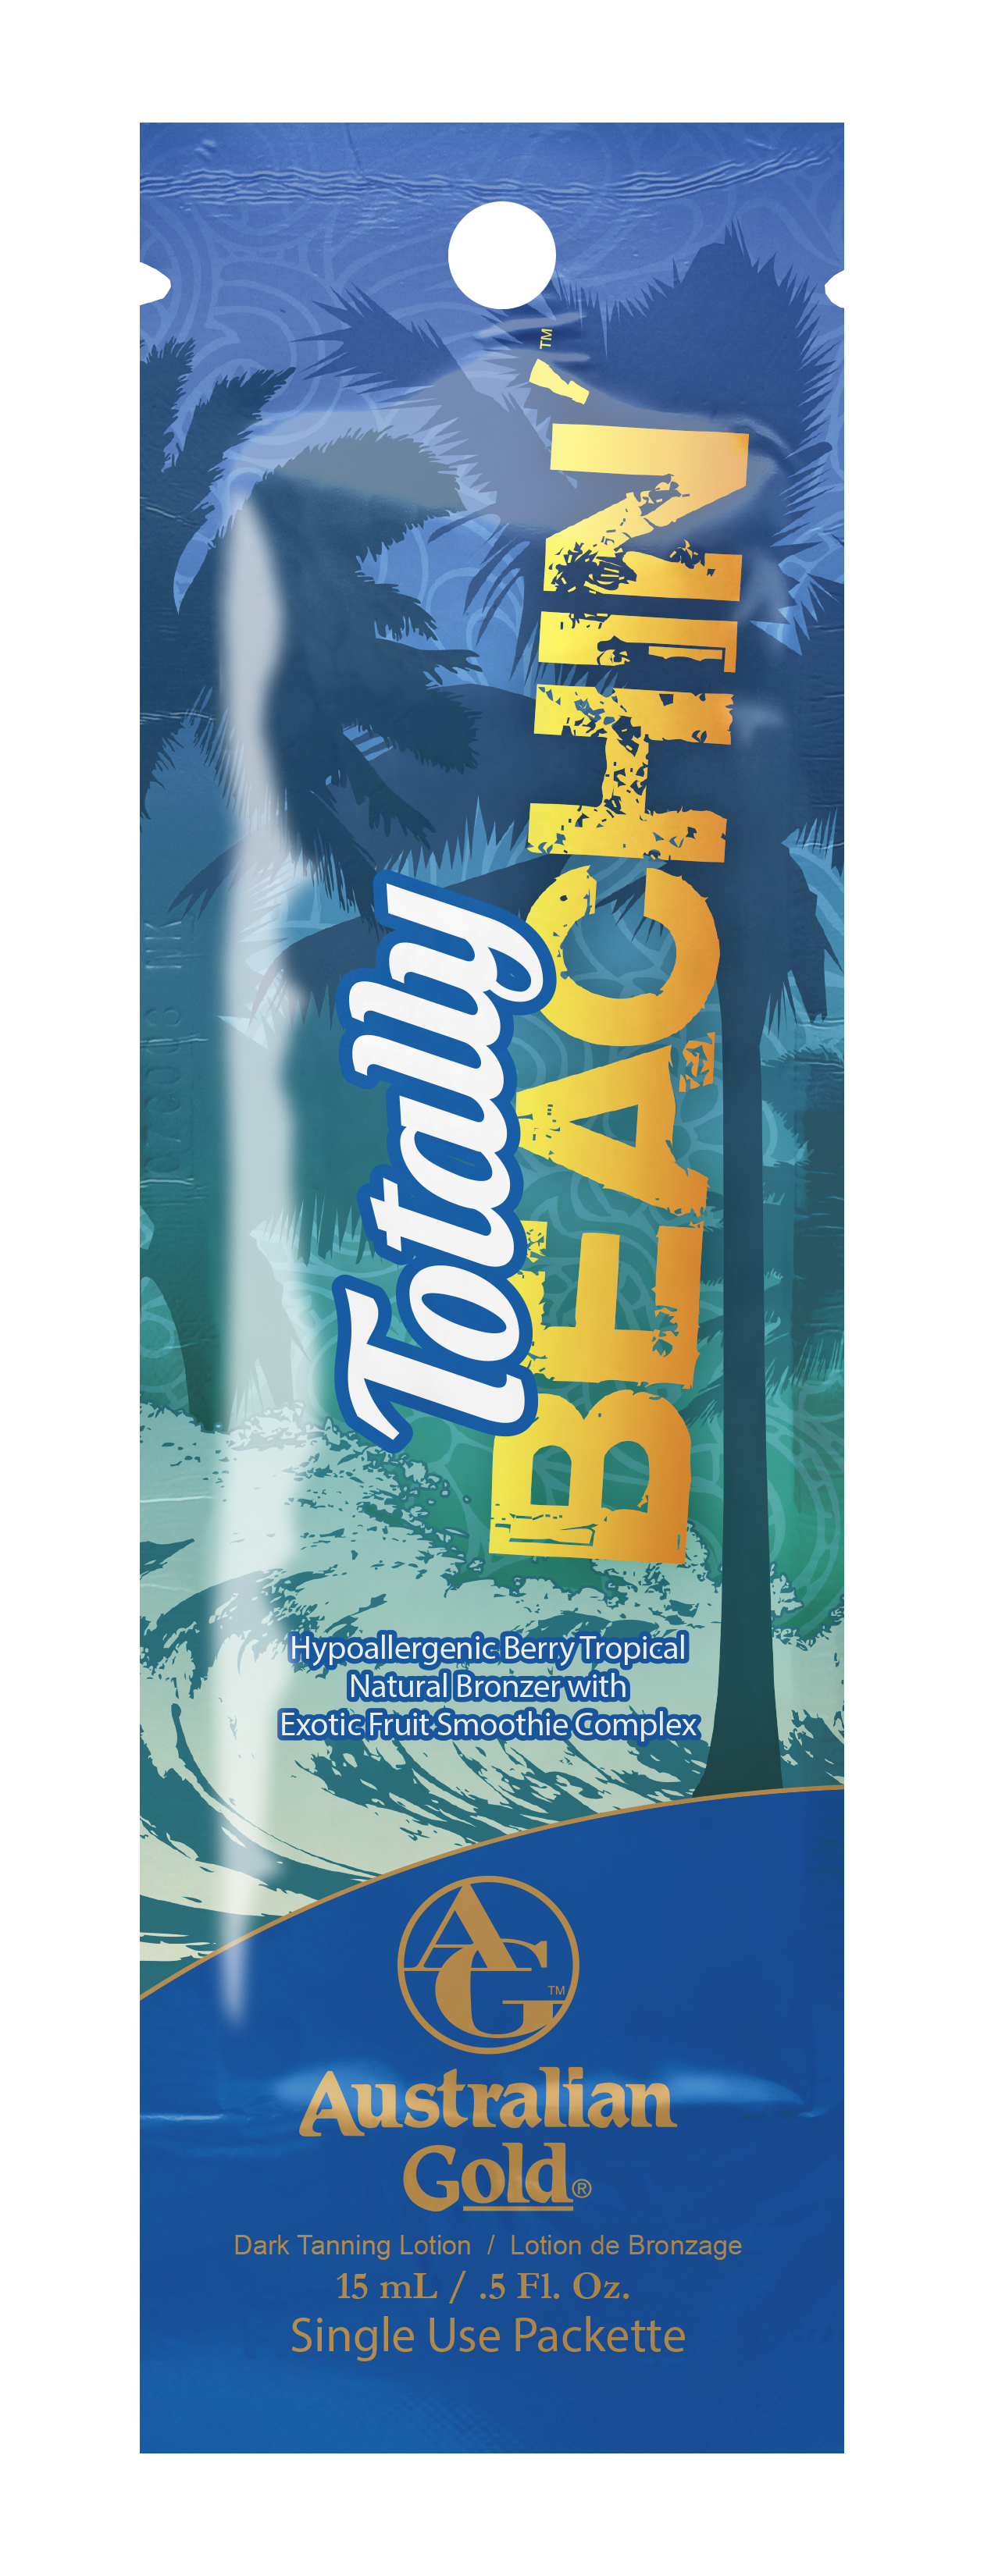 Totally Beachin'™ Hypoallergenic Berry Tropical Natural Bronzer Pkt